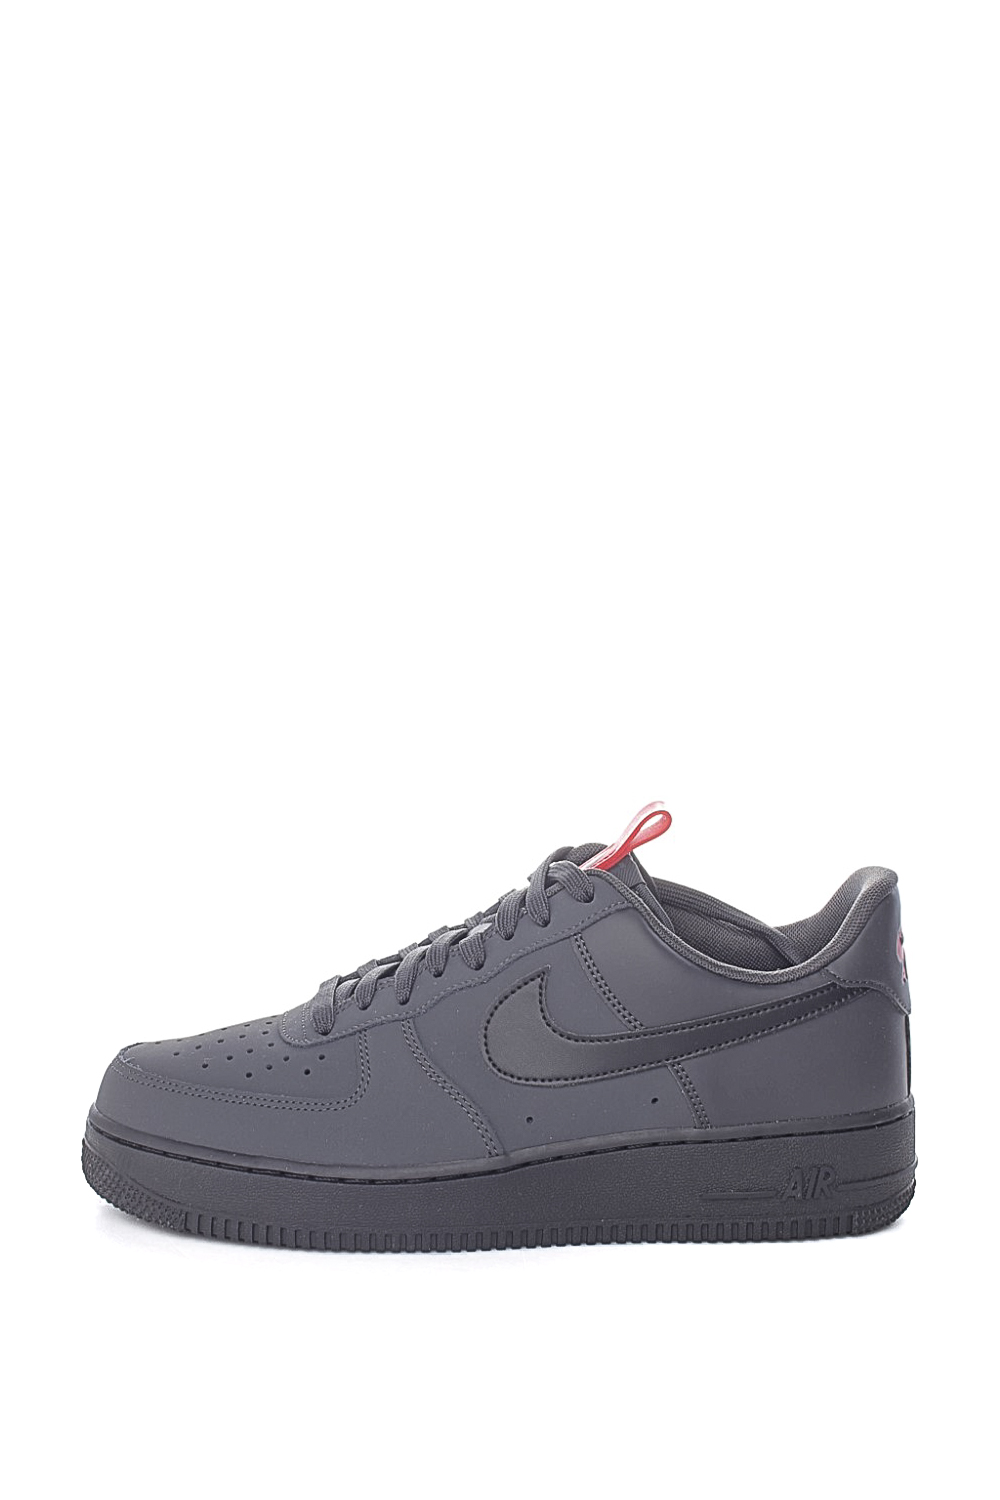 NIKE – Ανδρικά παπούτσια NIKE AIR FORCE 1 '07 ανθρακί